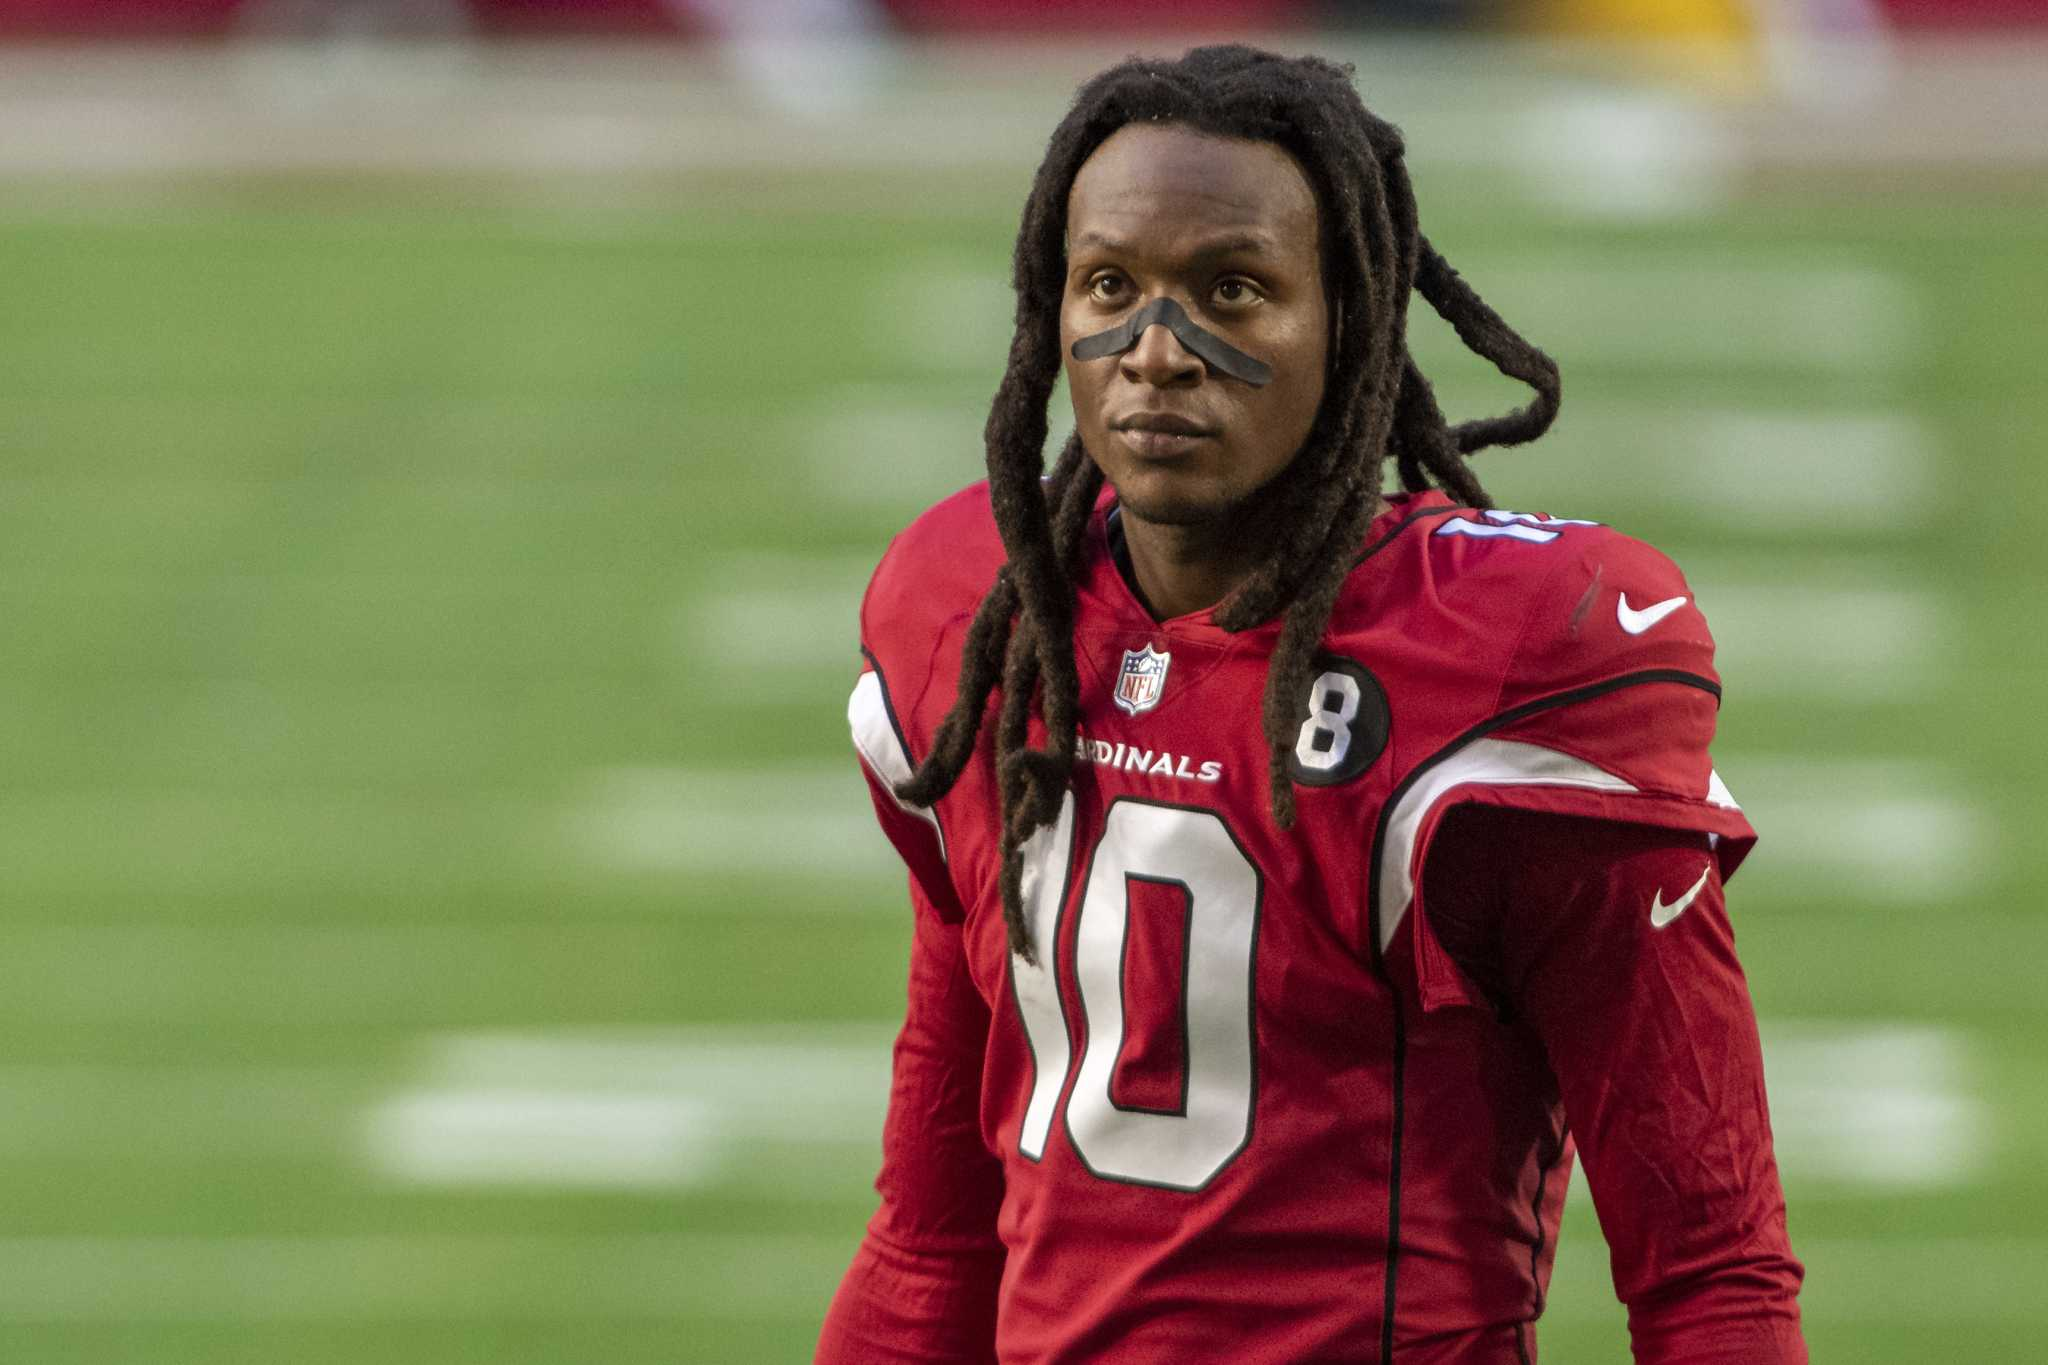 Former Texans star DeAndre Hopkins questions NFL future because he won't get vaccine